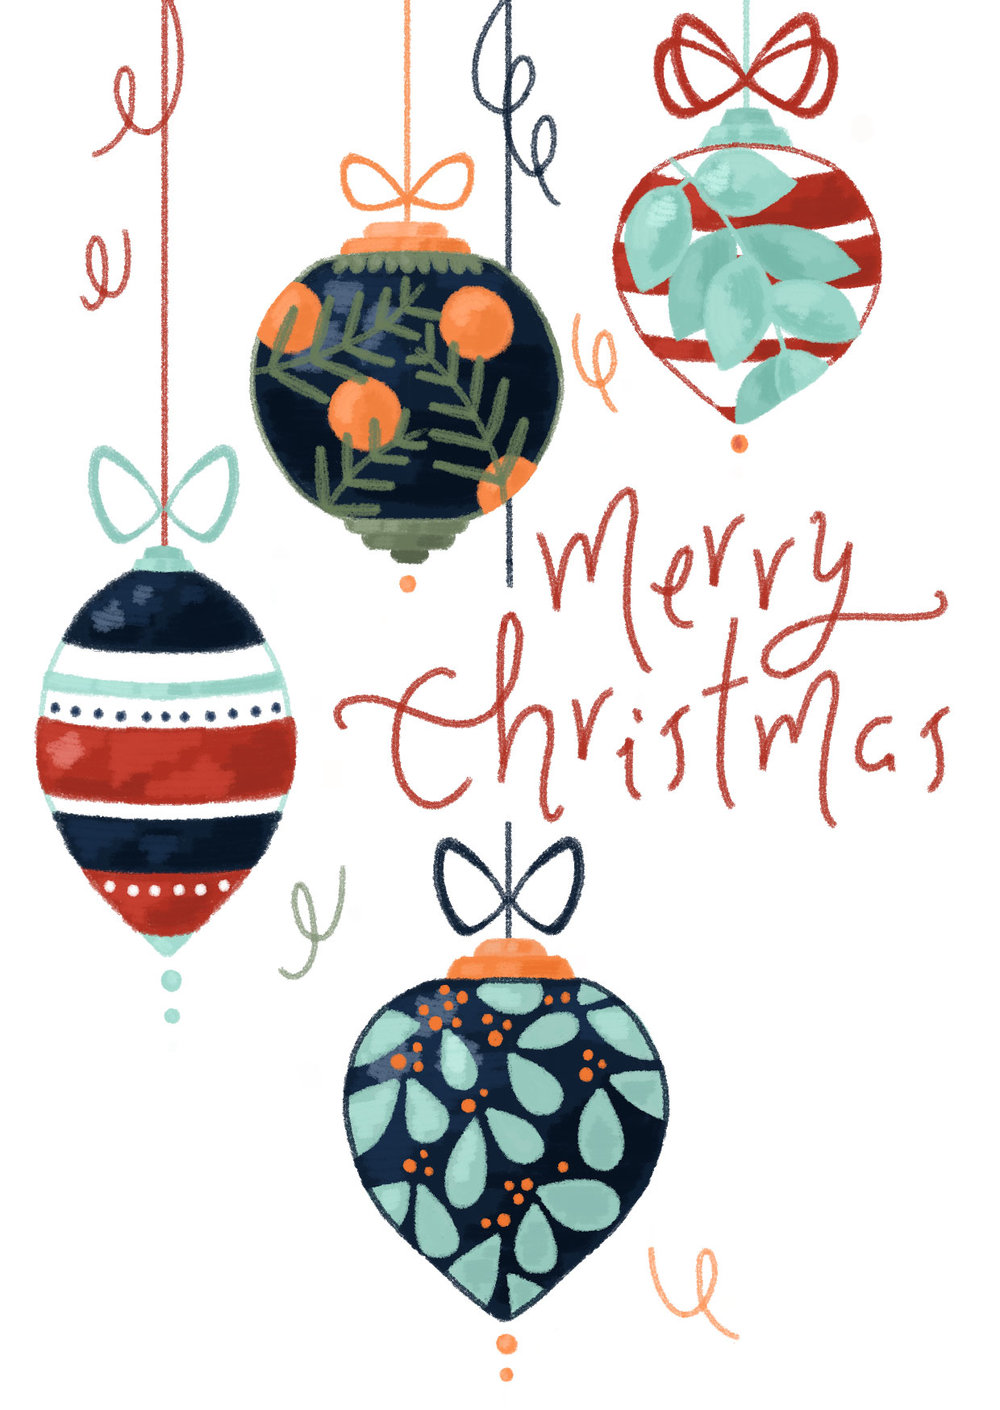 Christmas card design, illustrated baubles with hand lettered type.